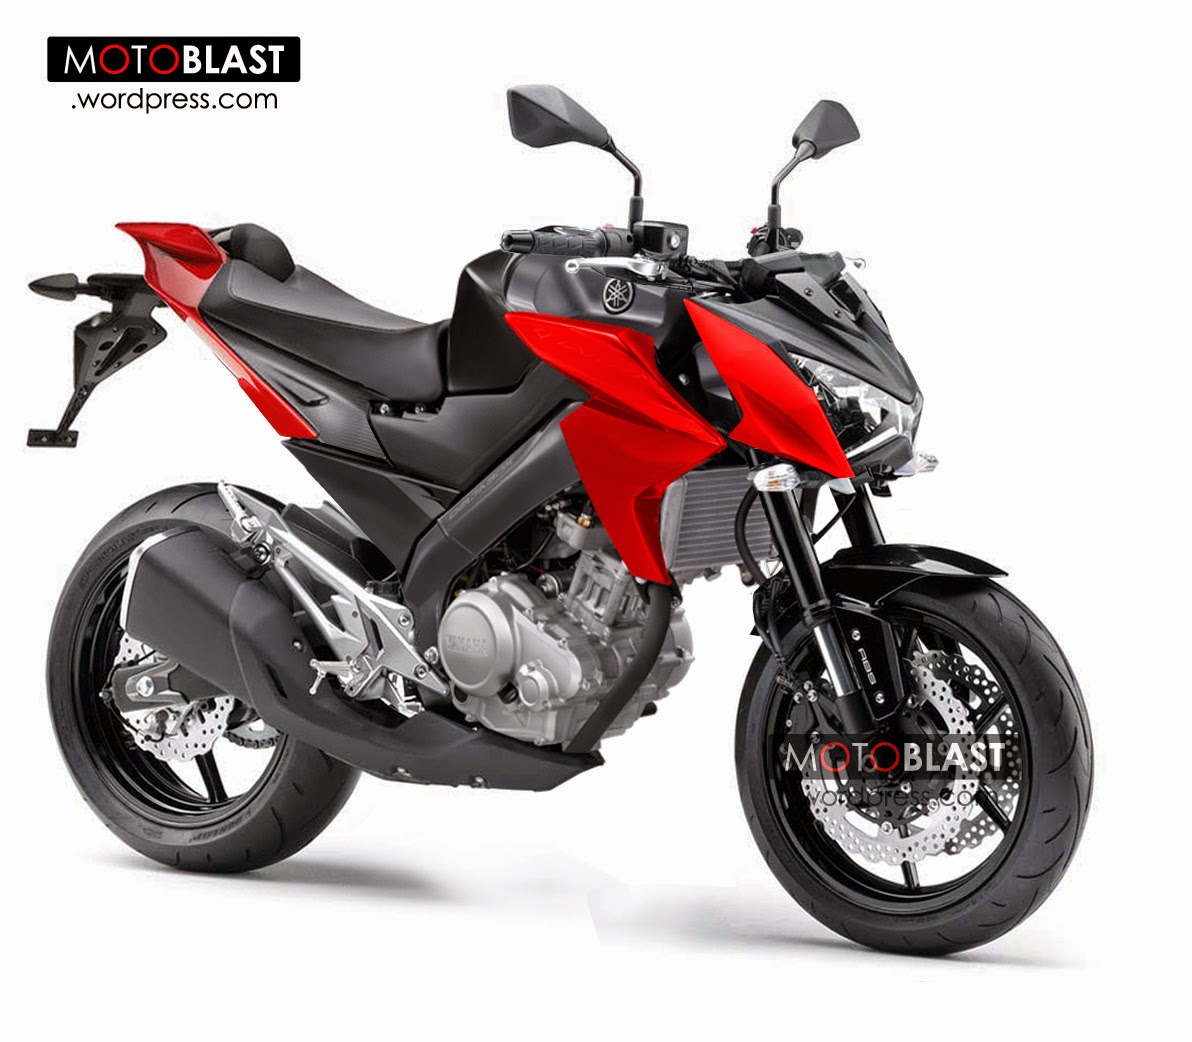 honda beat terbaru 2019 with Modifikasi Vixion Faighter Modifikasi Motor on Review Modifikasi Motor Kawasaki Klx additionally Toyota C Hr Small Suv Gets Detailed Interior Revealed together with Honda Pcx 150 together with The 2013 Chevrolet Trax Mini Crossover Is Not  ing Here moreover Yamaha Yzf R25 2017 Racing Blue New.